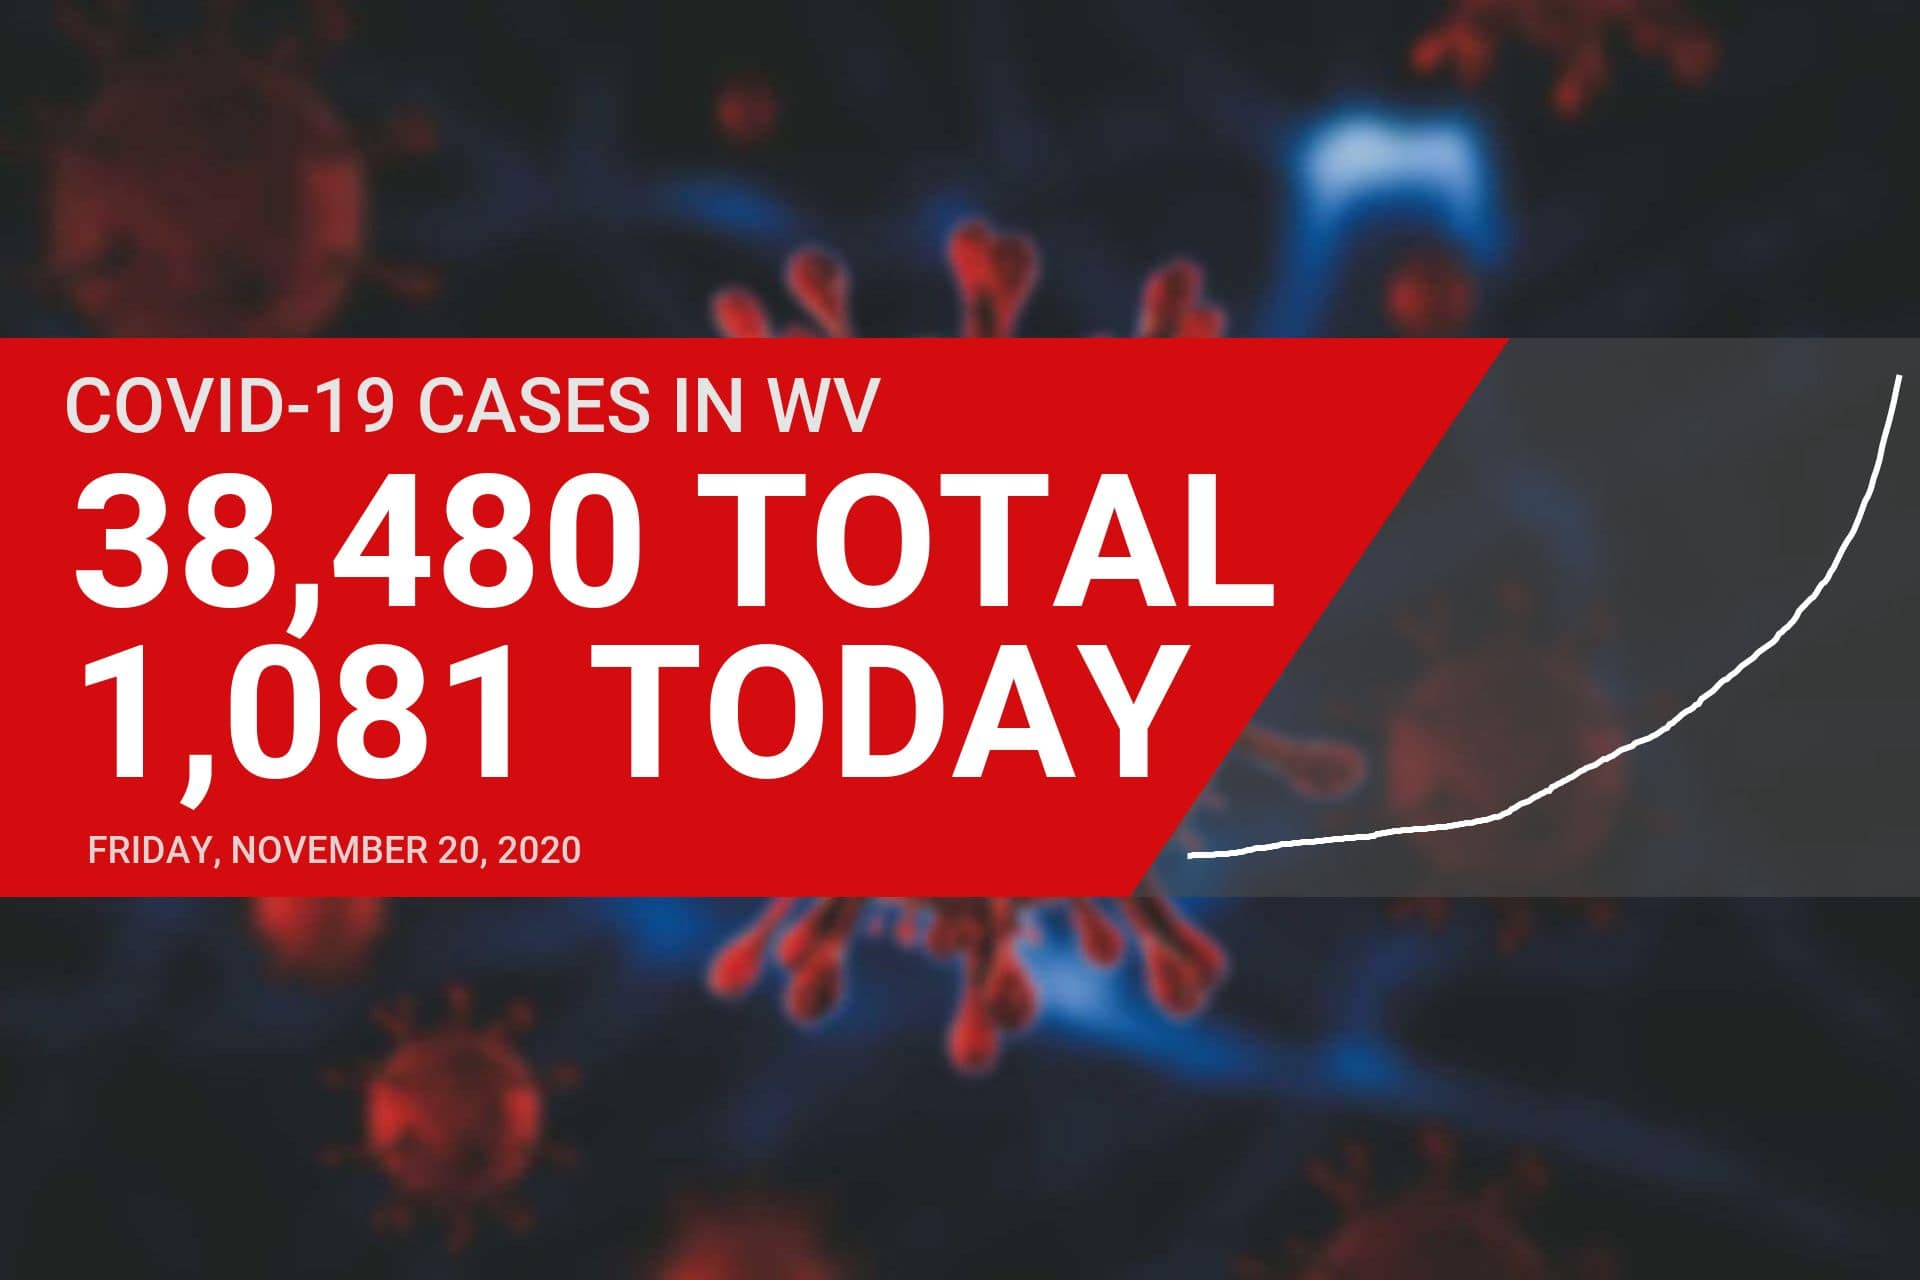 13 new COVID-19 cases reported in Upshur County on Friday